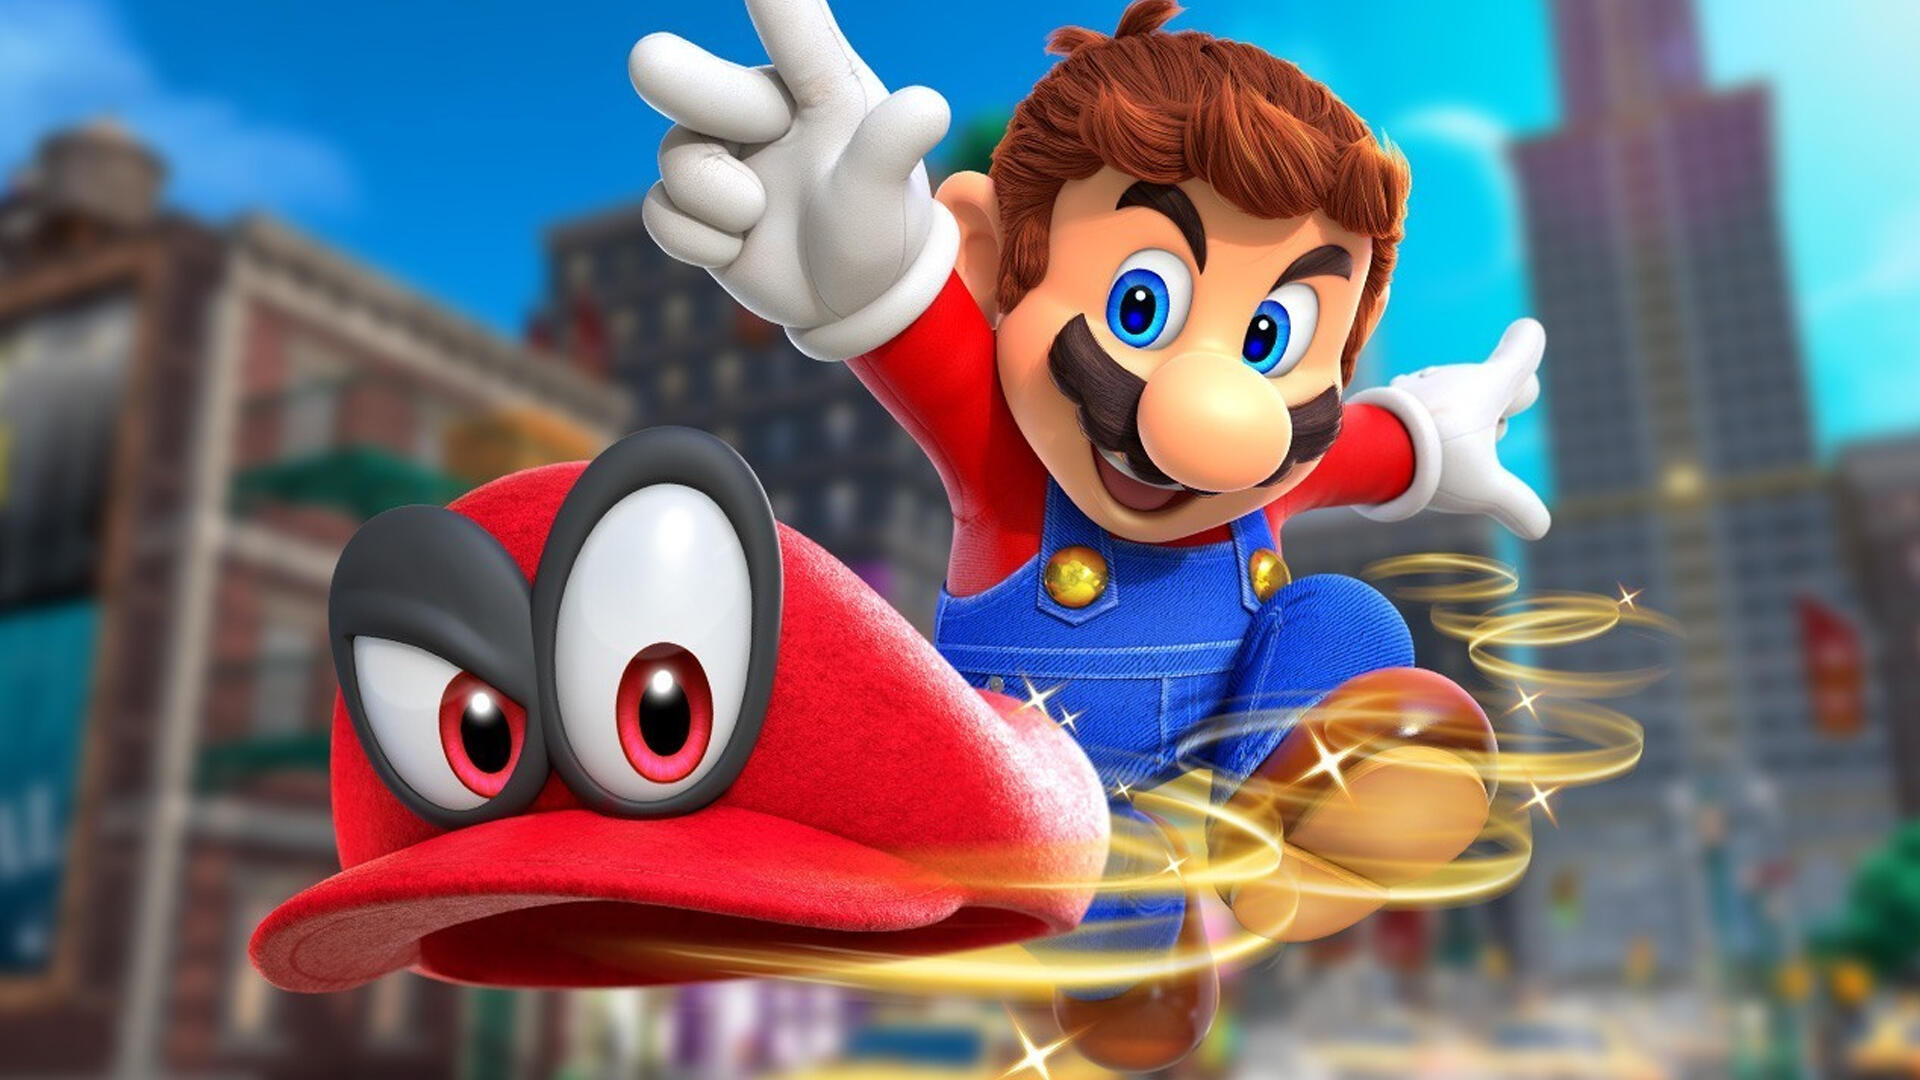 This Week's Best Video Game Deals - 08/11/2017